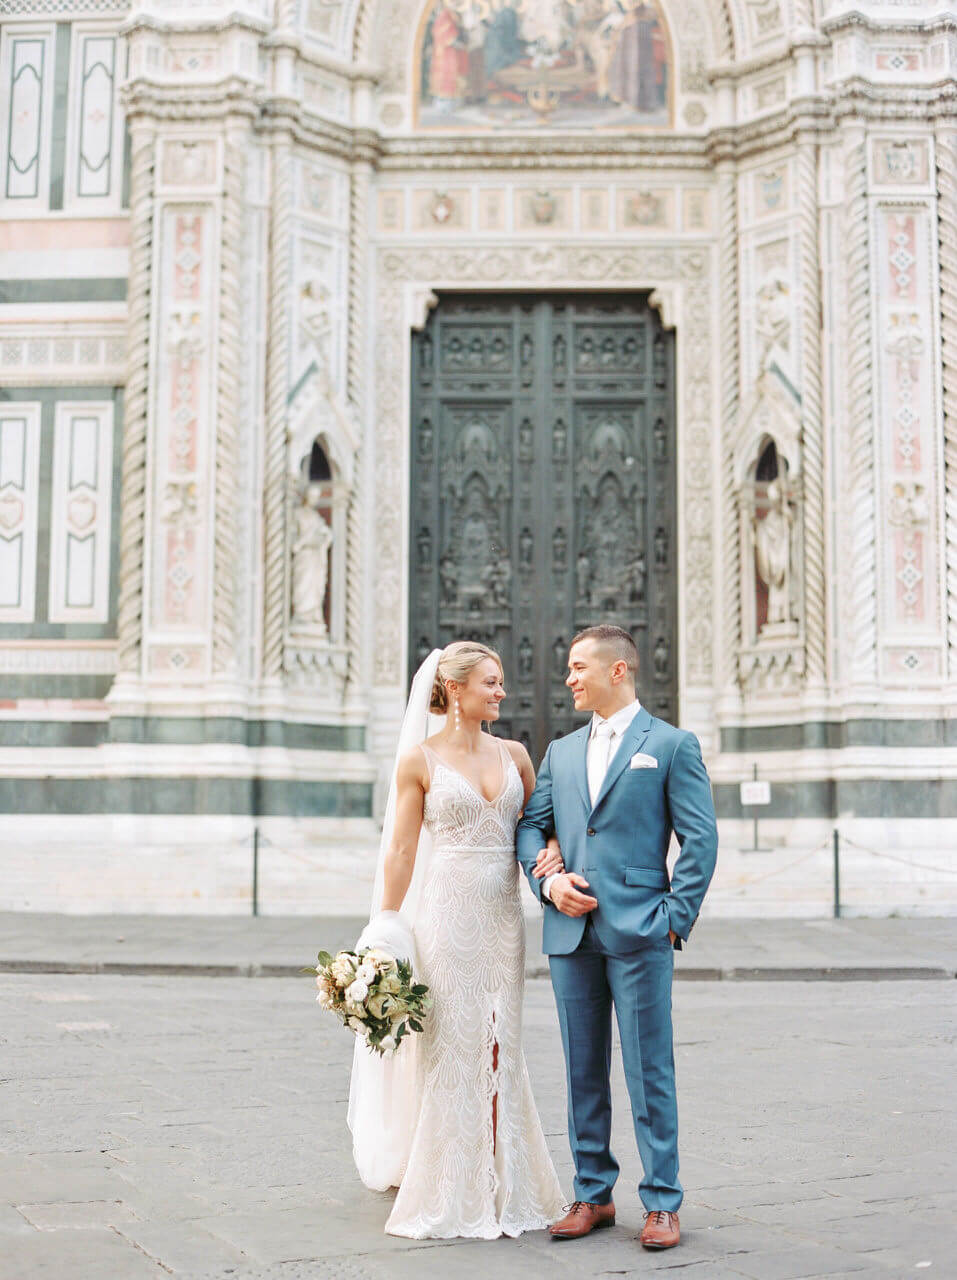 Wedding Portraits at the Doumo in Florence by Adrian Wood Photography